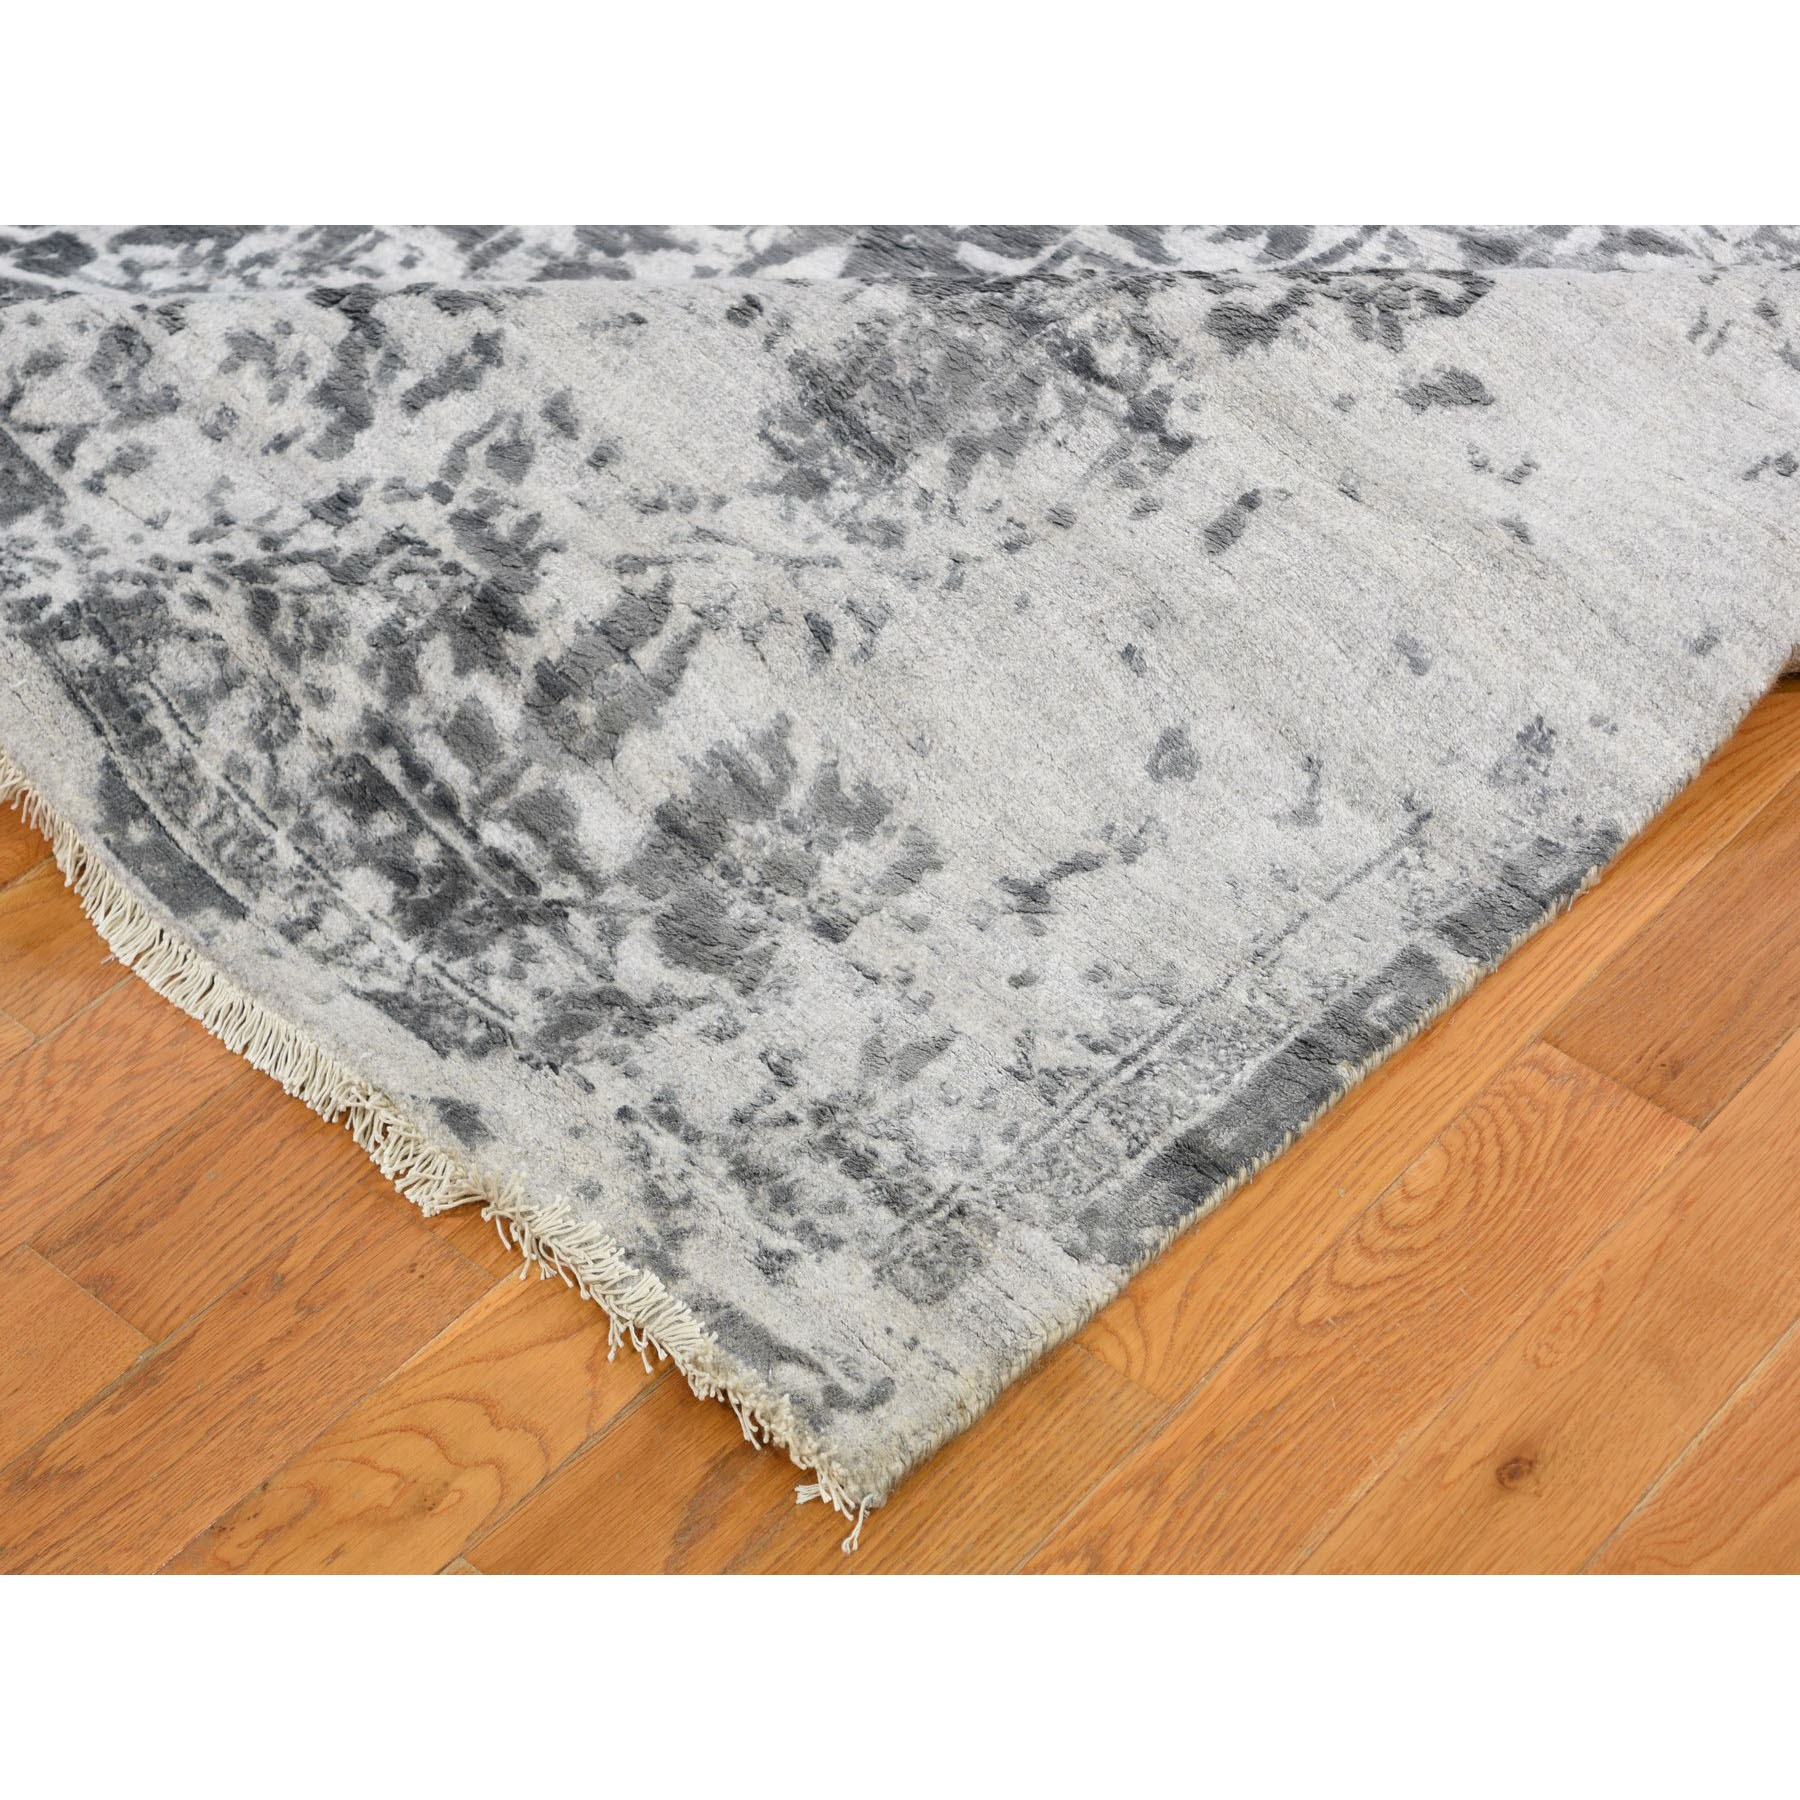 9-x12- Silver-Dark Gray Erased Persian Design Wool and Pure Silk Hand Knotted Oriental Rug